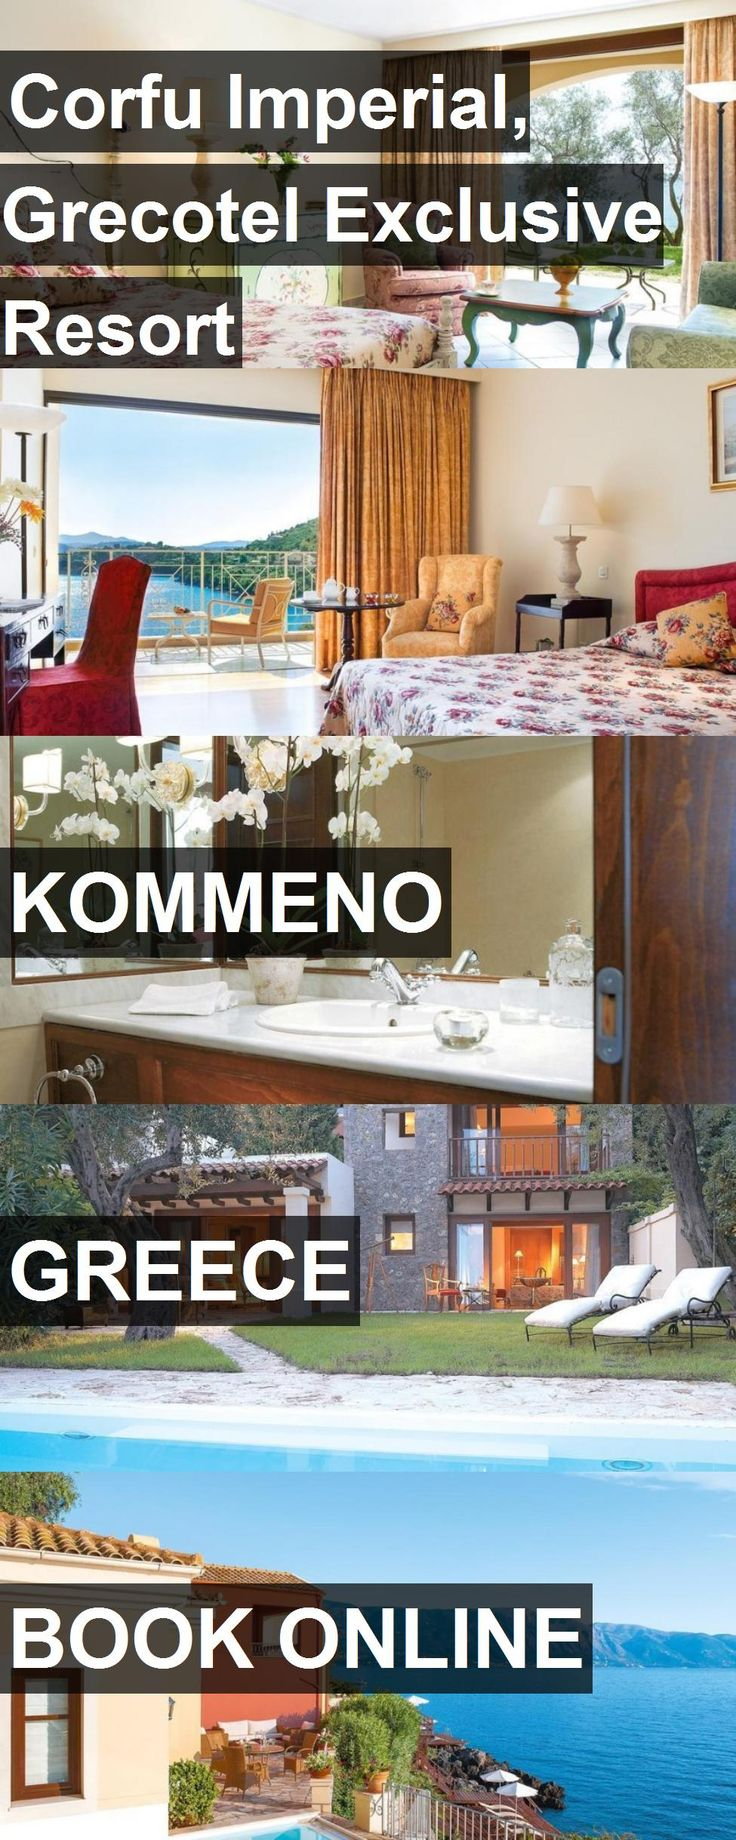 Hotel Corfu Imperial, Grecotel Exclusive Resort in Kommeno, Greece. For more information, photos, reviews and best prices please follow the link. #Greece #Kommeno #travel #vacation #hotel